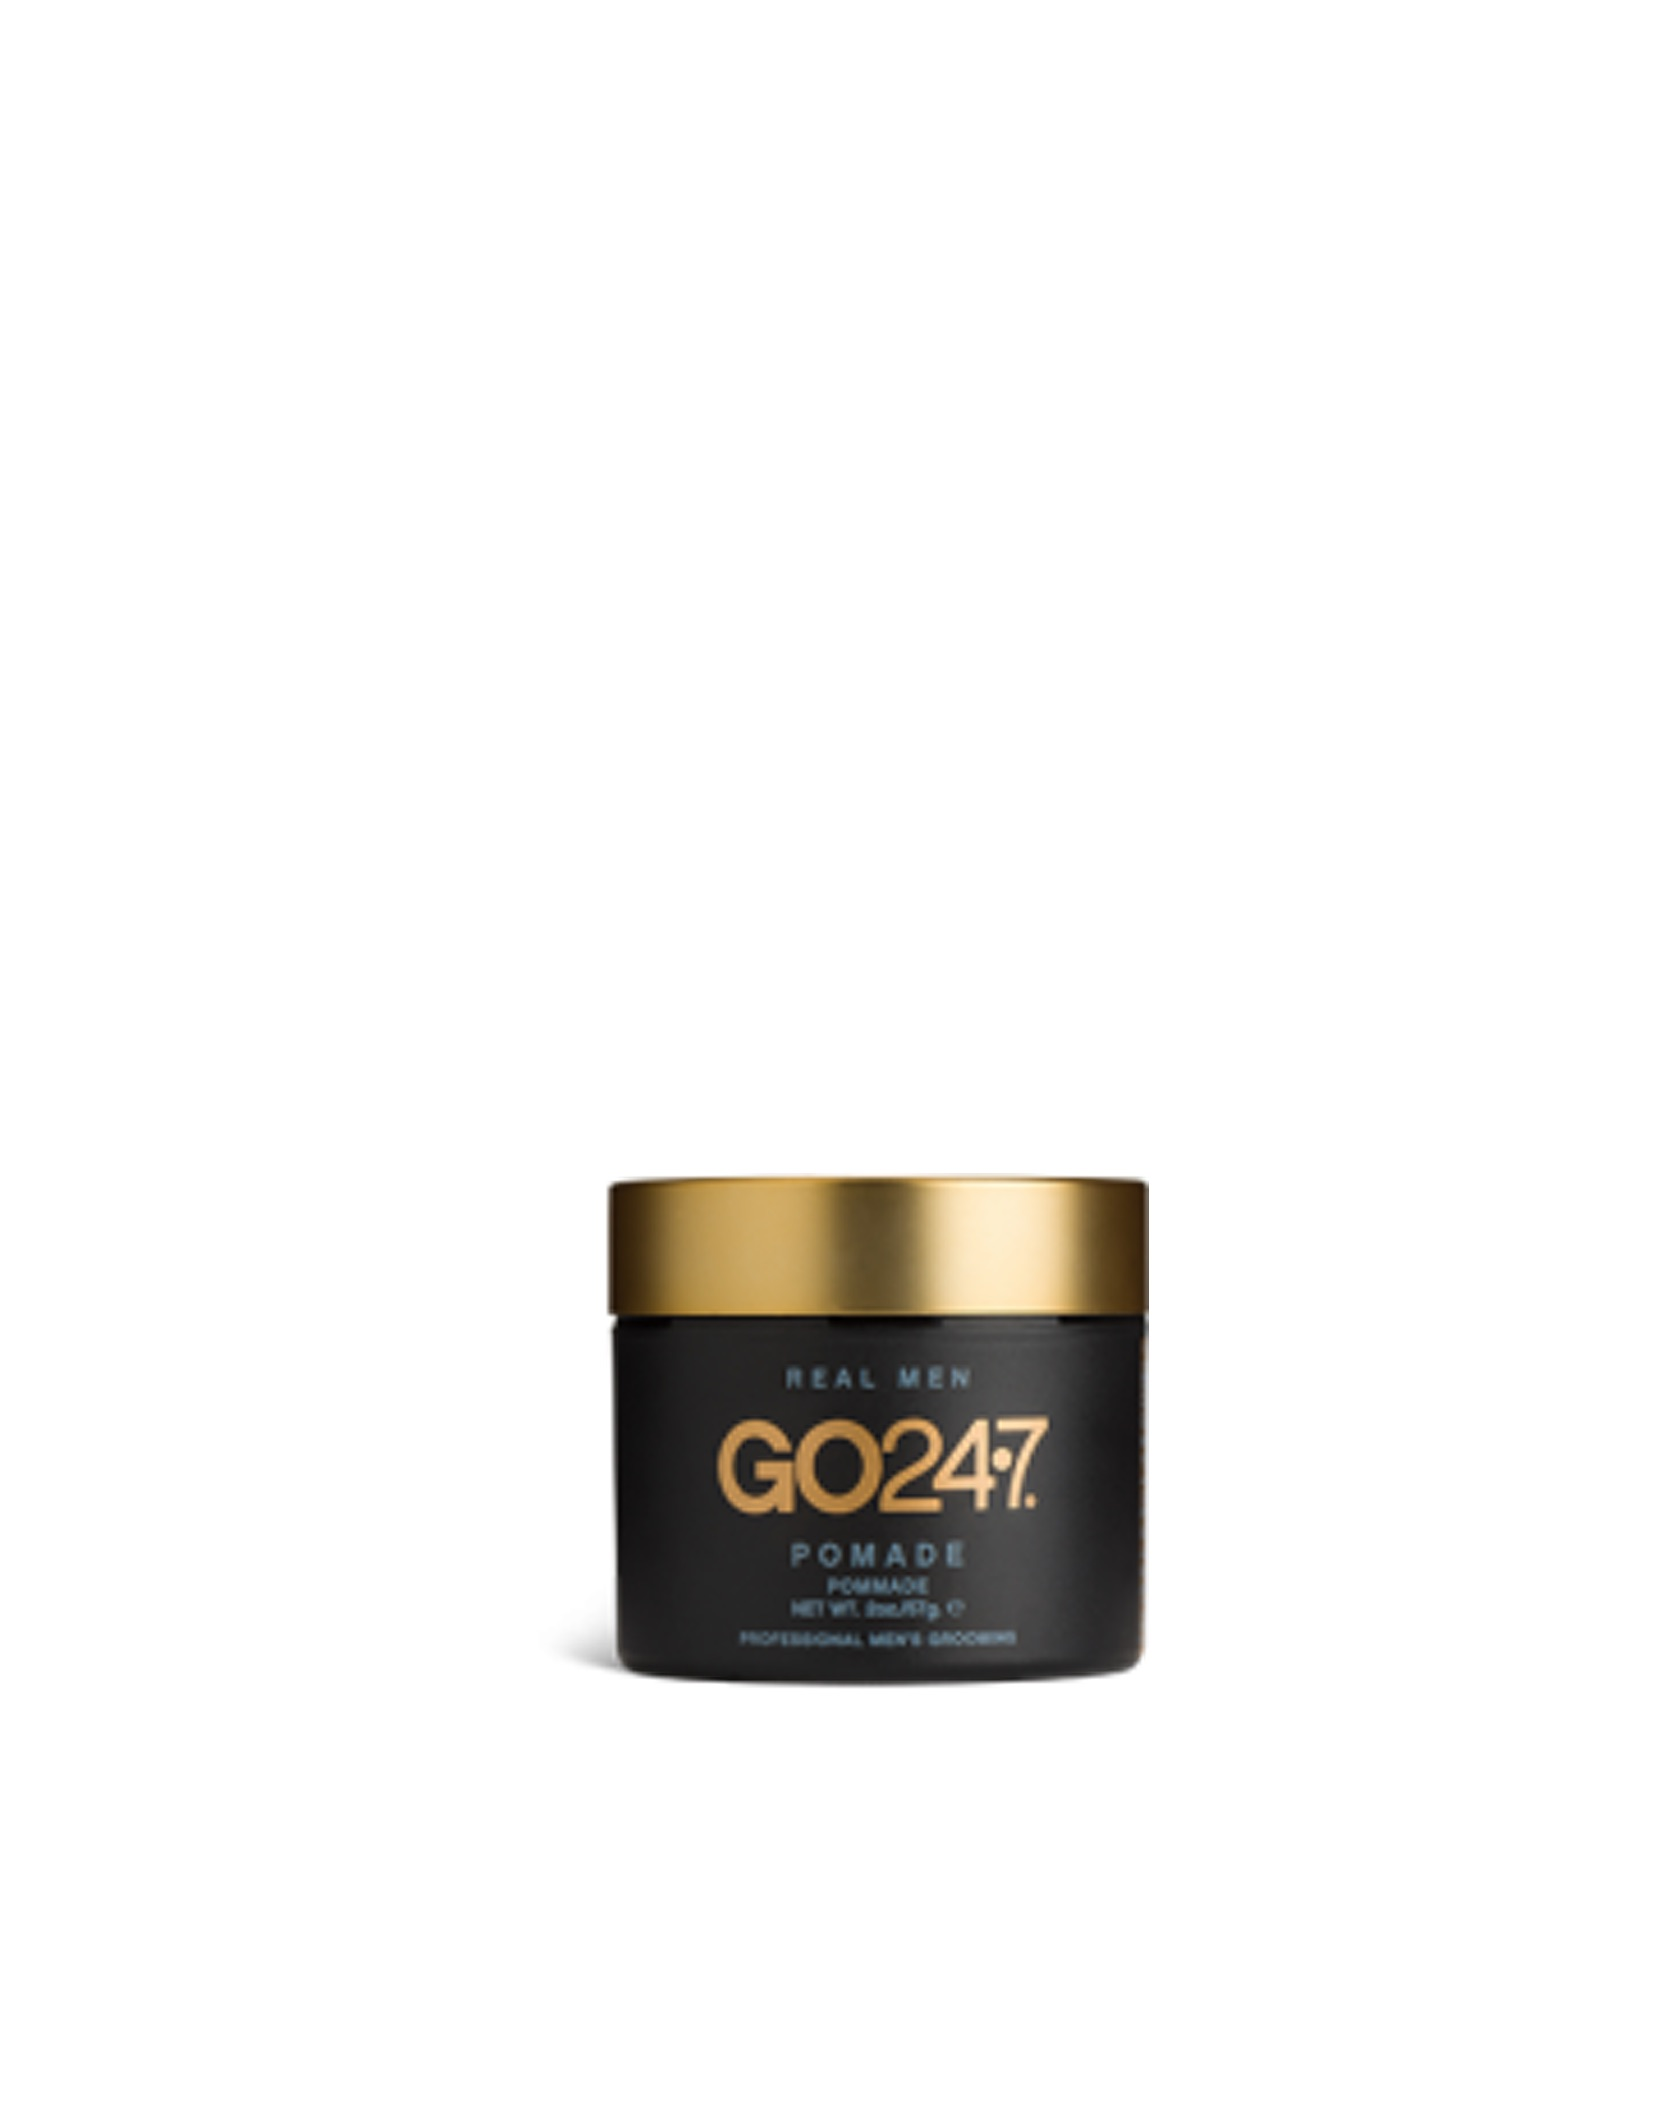 Pomade-2oz-500x500.png